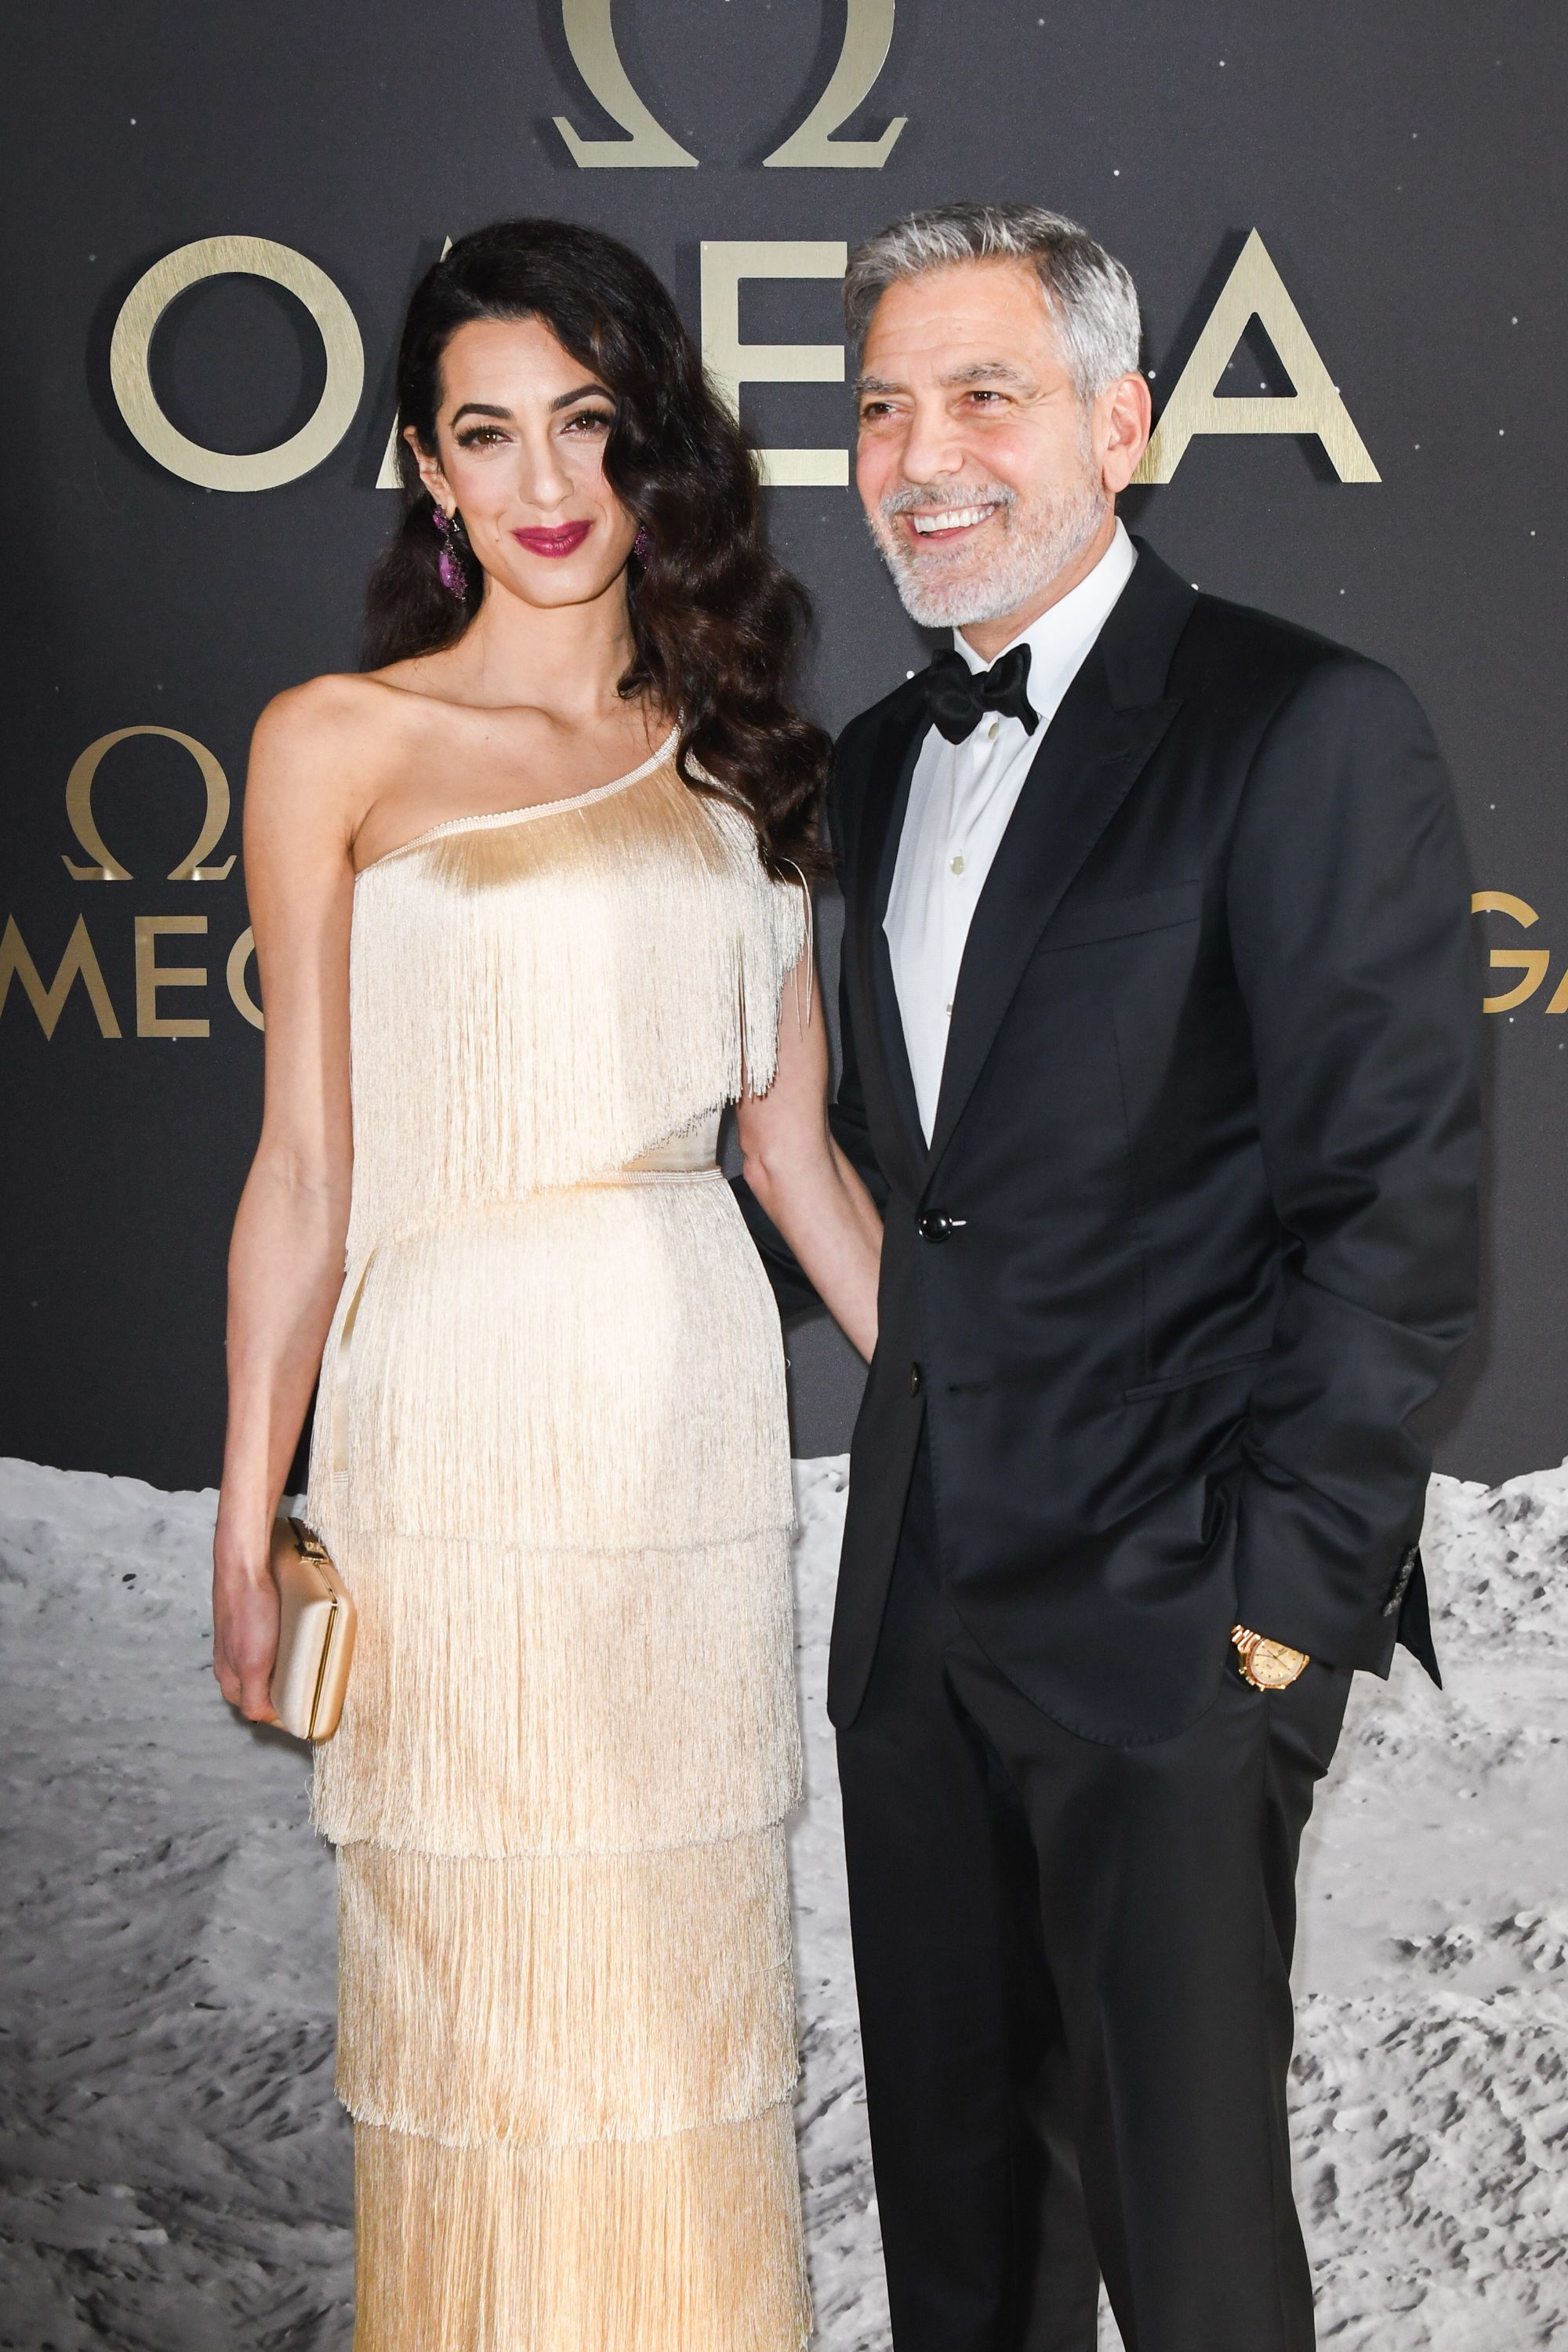 Amal Clooney channels old Hollywood glamour at a gala event with George Clooney